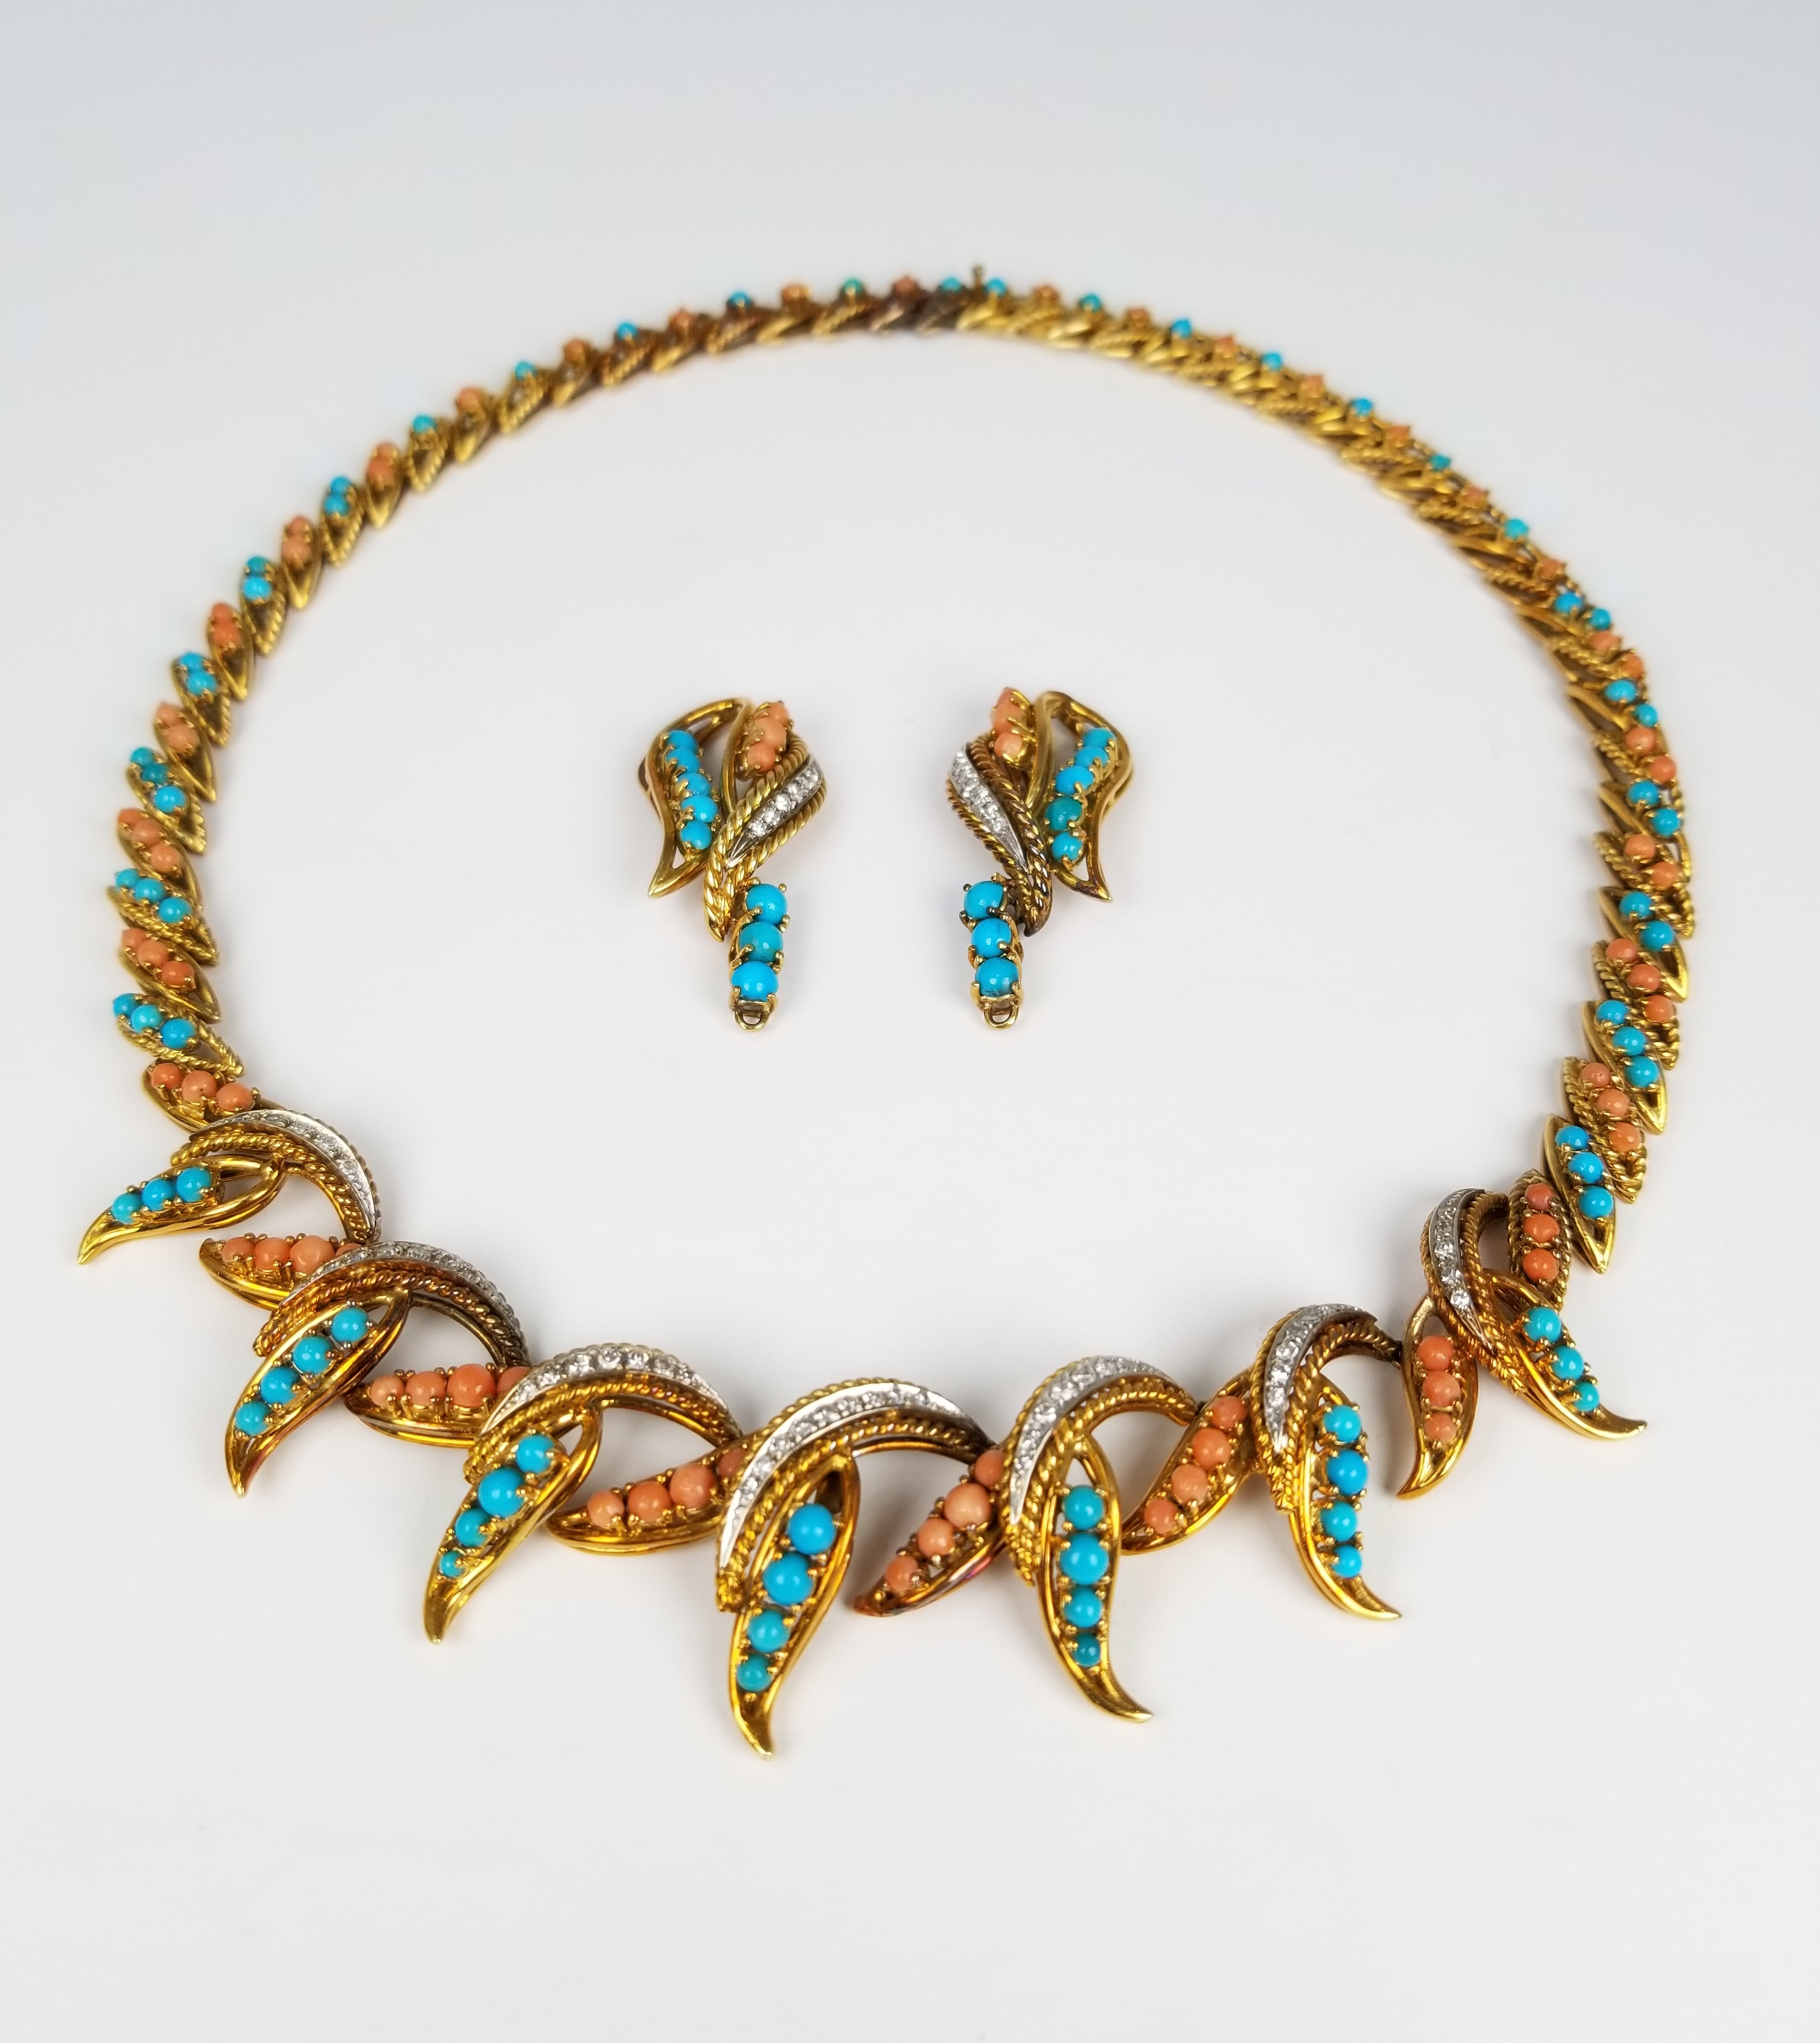 Lot 37 - 18K Gold Turquoise & Coral Necklace Set